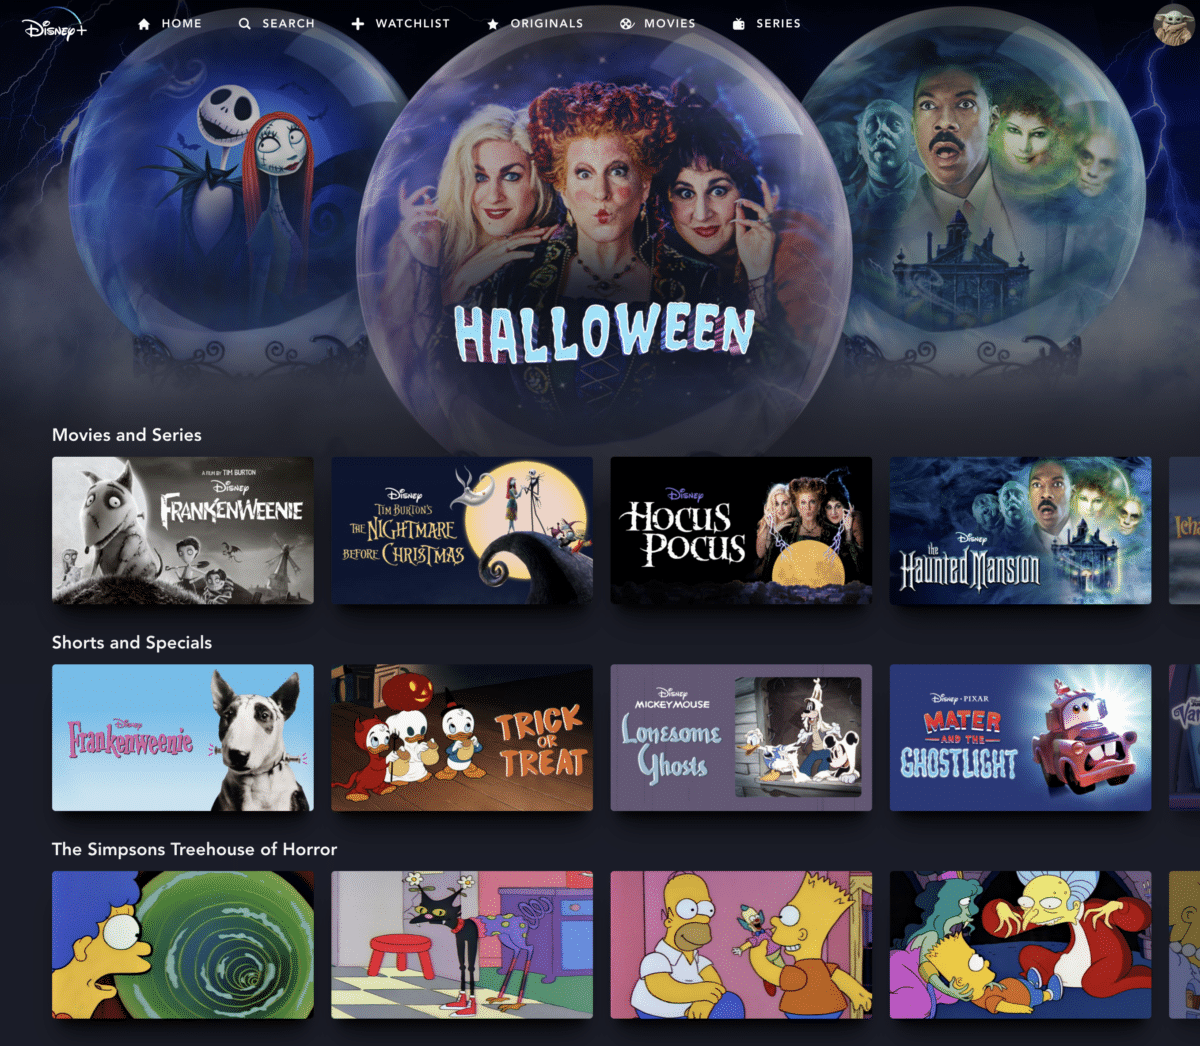 The Ultimate List of Halloween Movies and Shows on Disney+